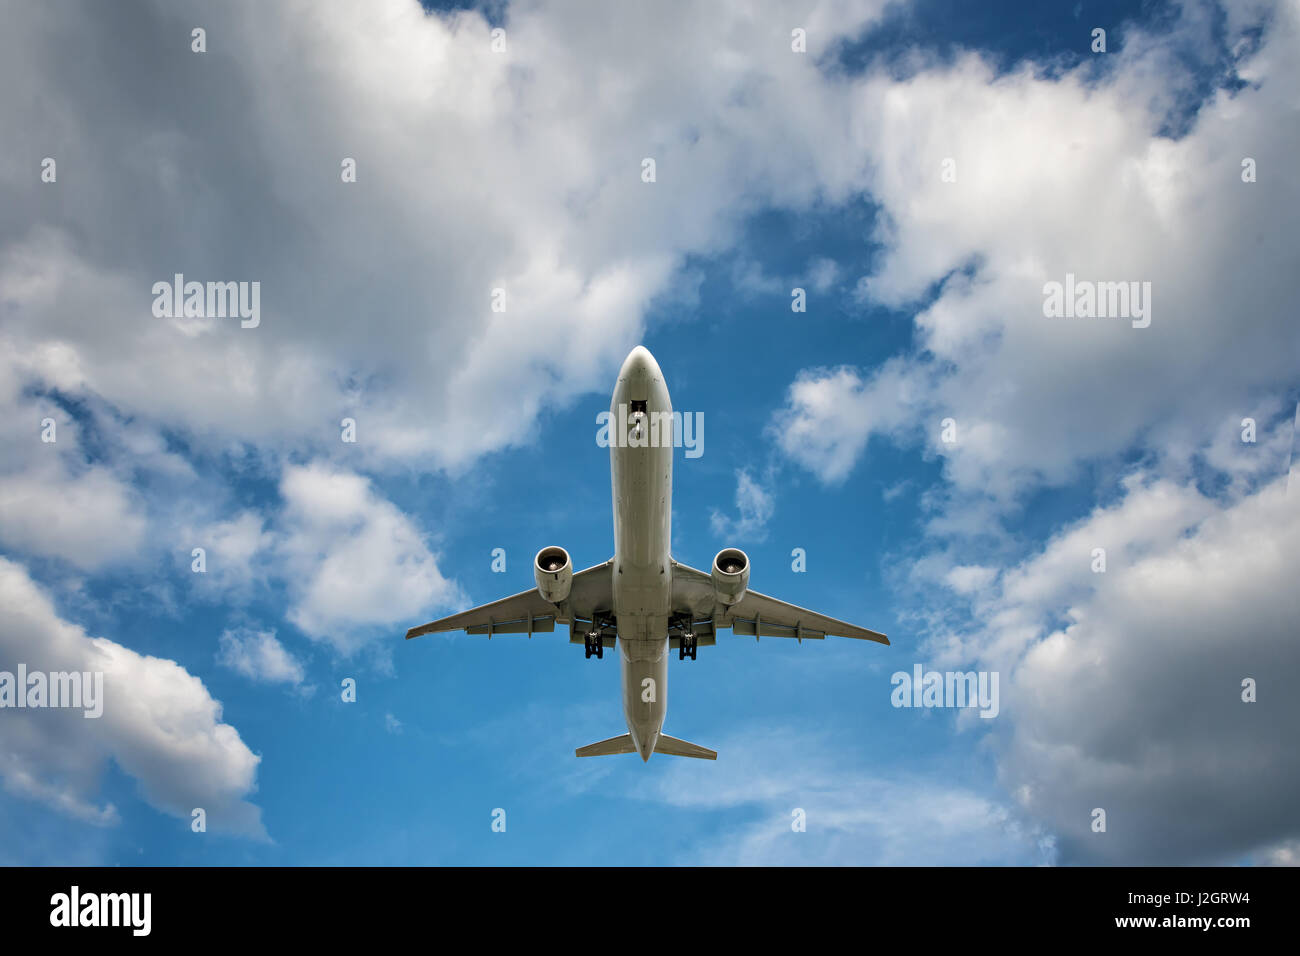 big jet plane on blue cloudy sky background - Stock Image